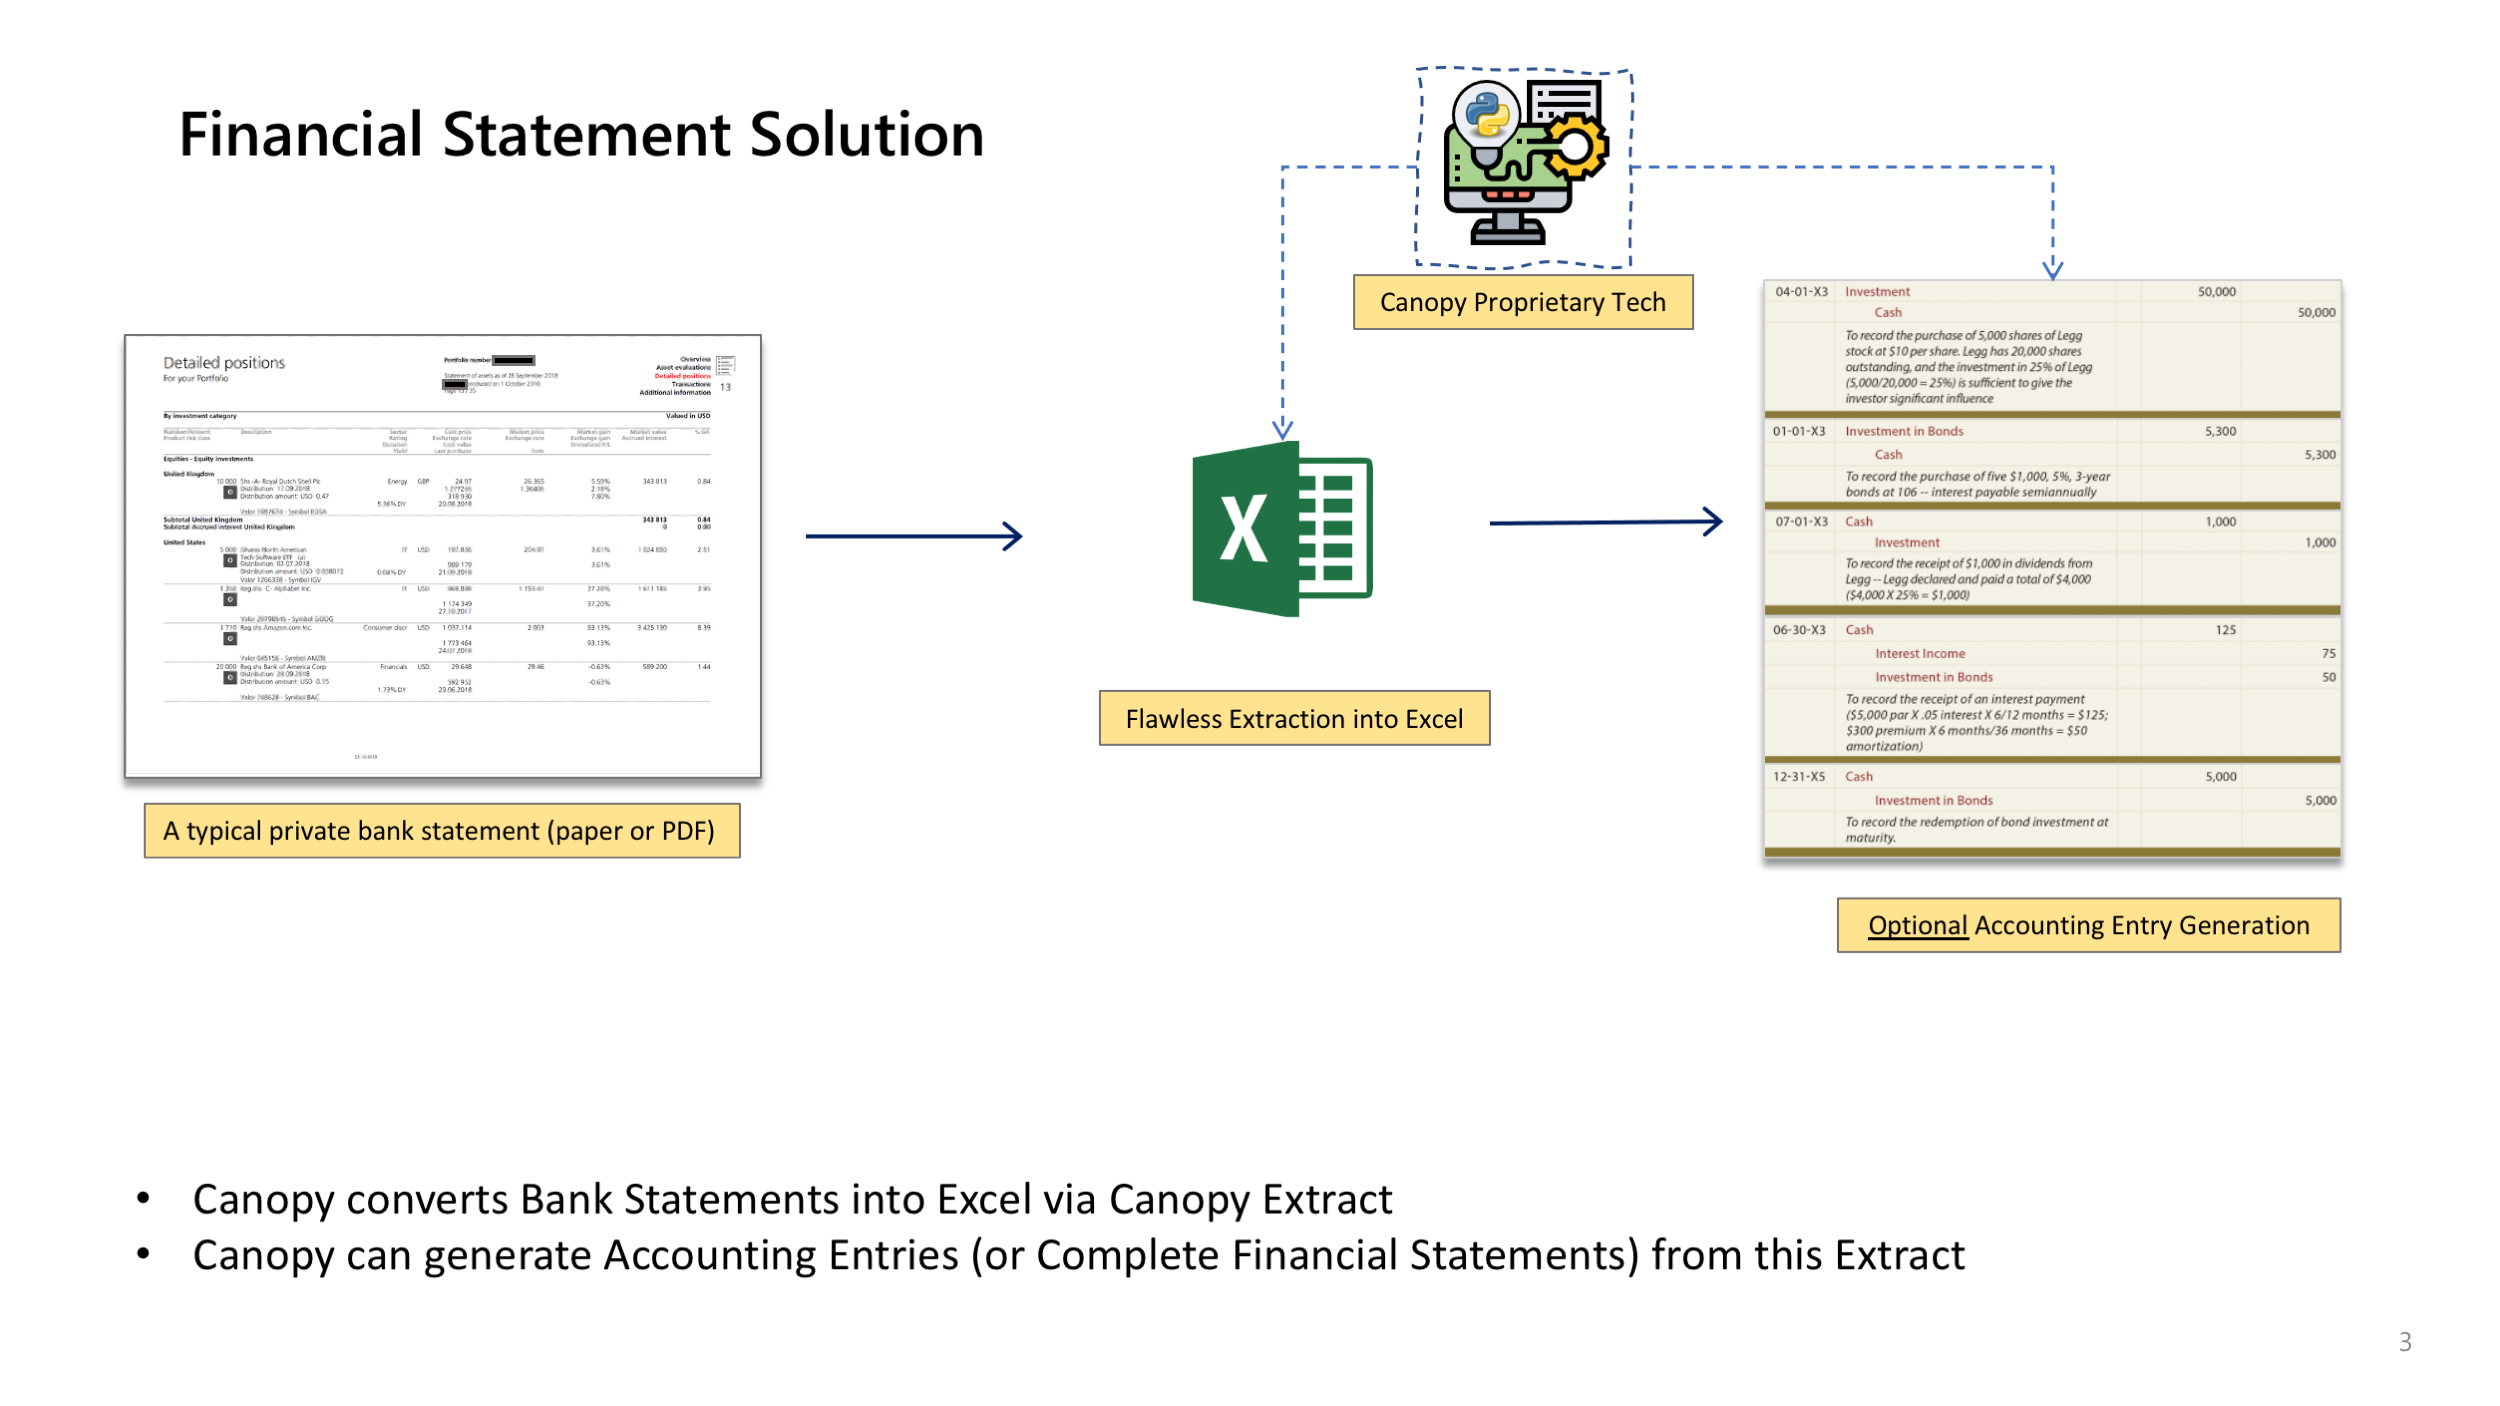 Bank statments in PDF (or APIs where the bank is able to provide one) can be converted into Accounting Entries or complete Financial Statements